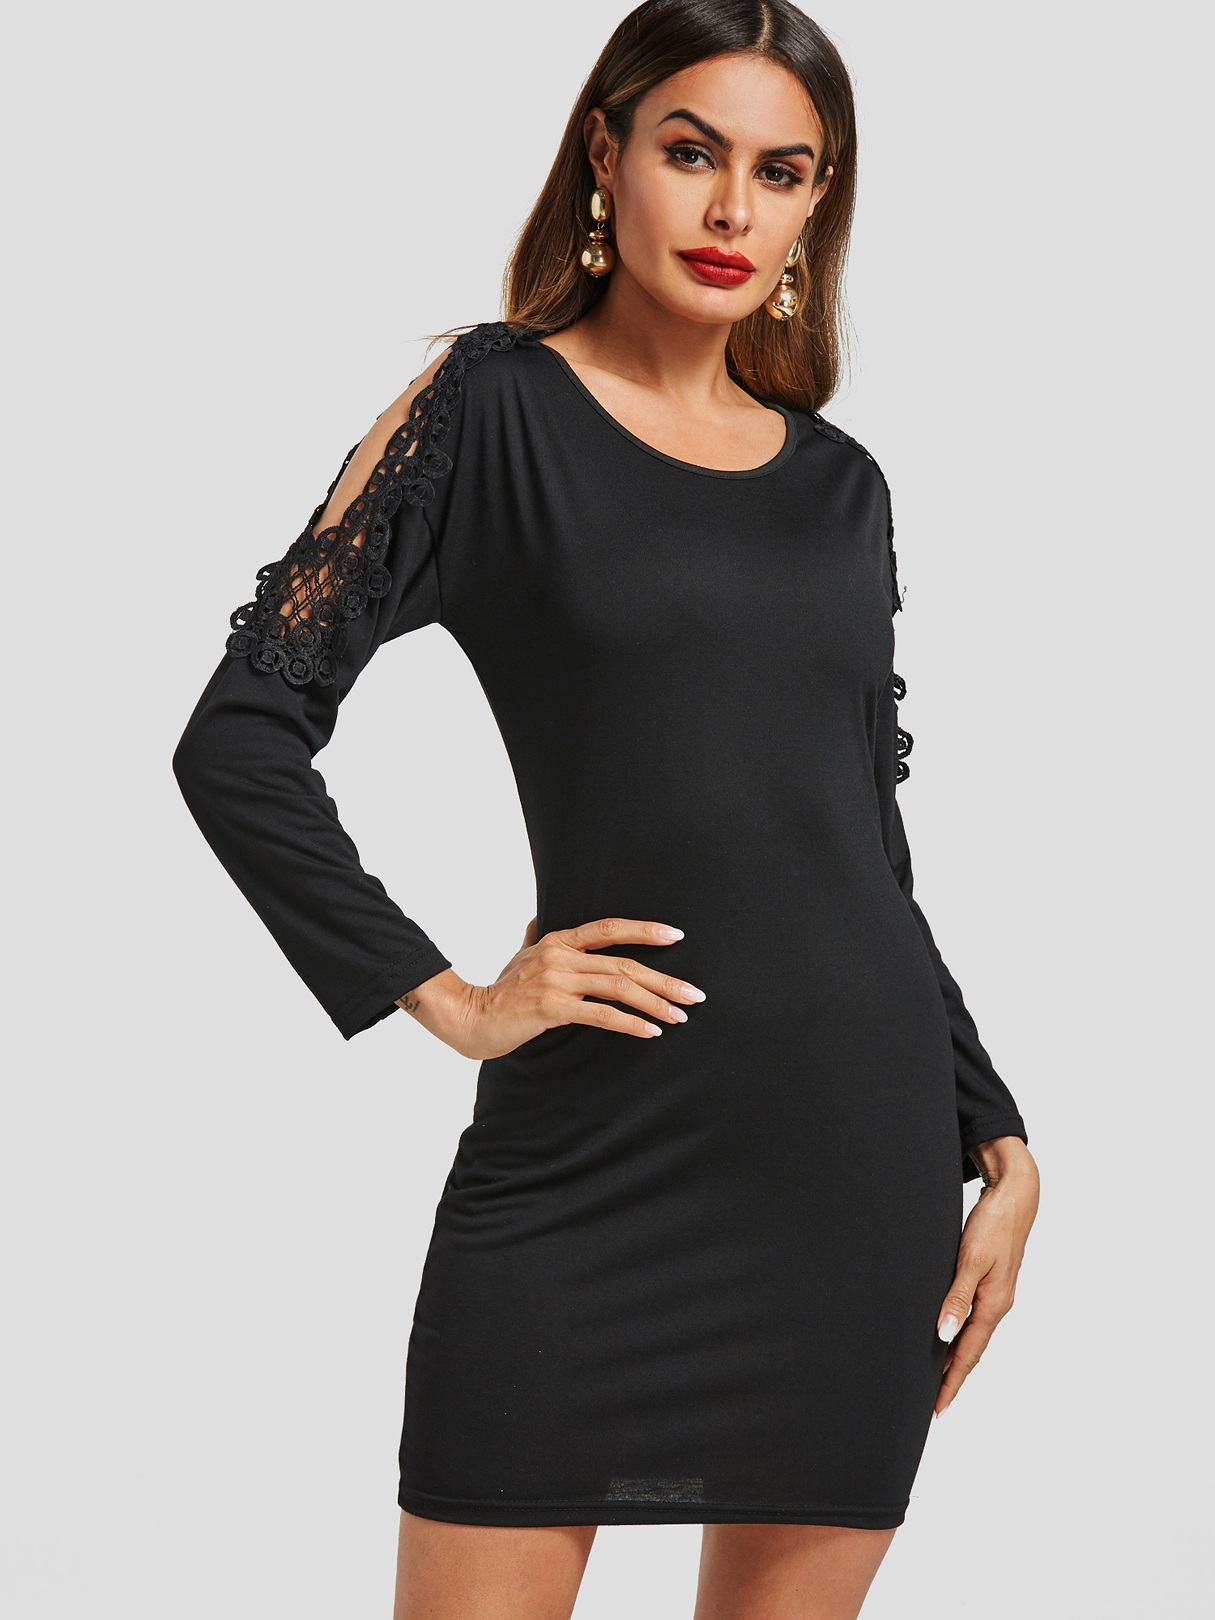 Black Lace Insert Cold Shoulder Mini Dress